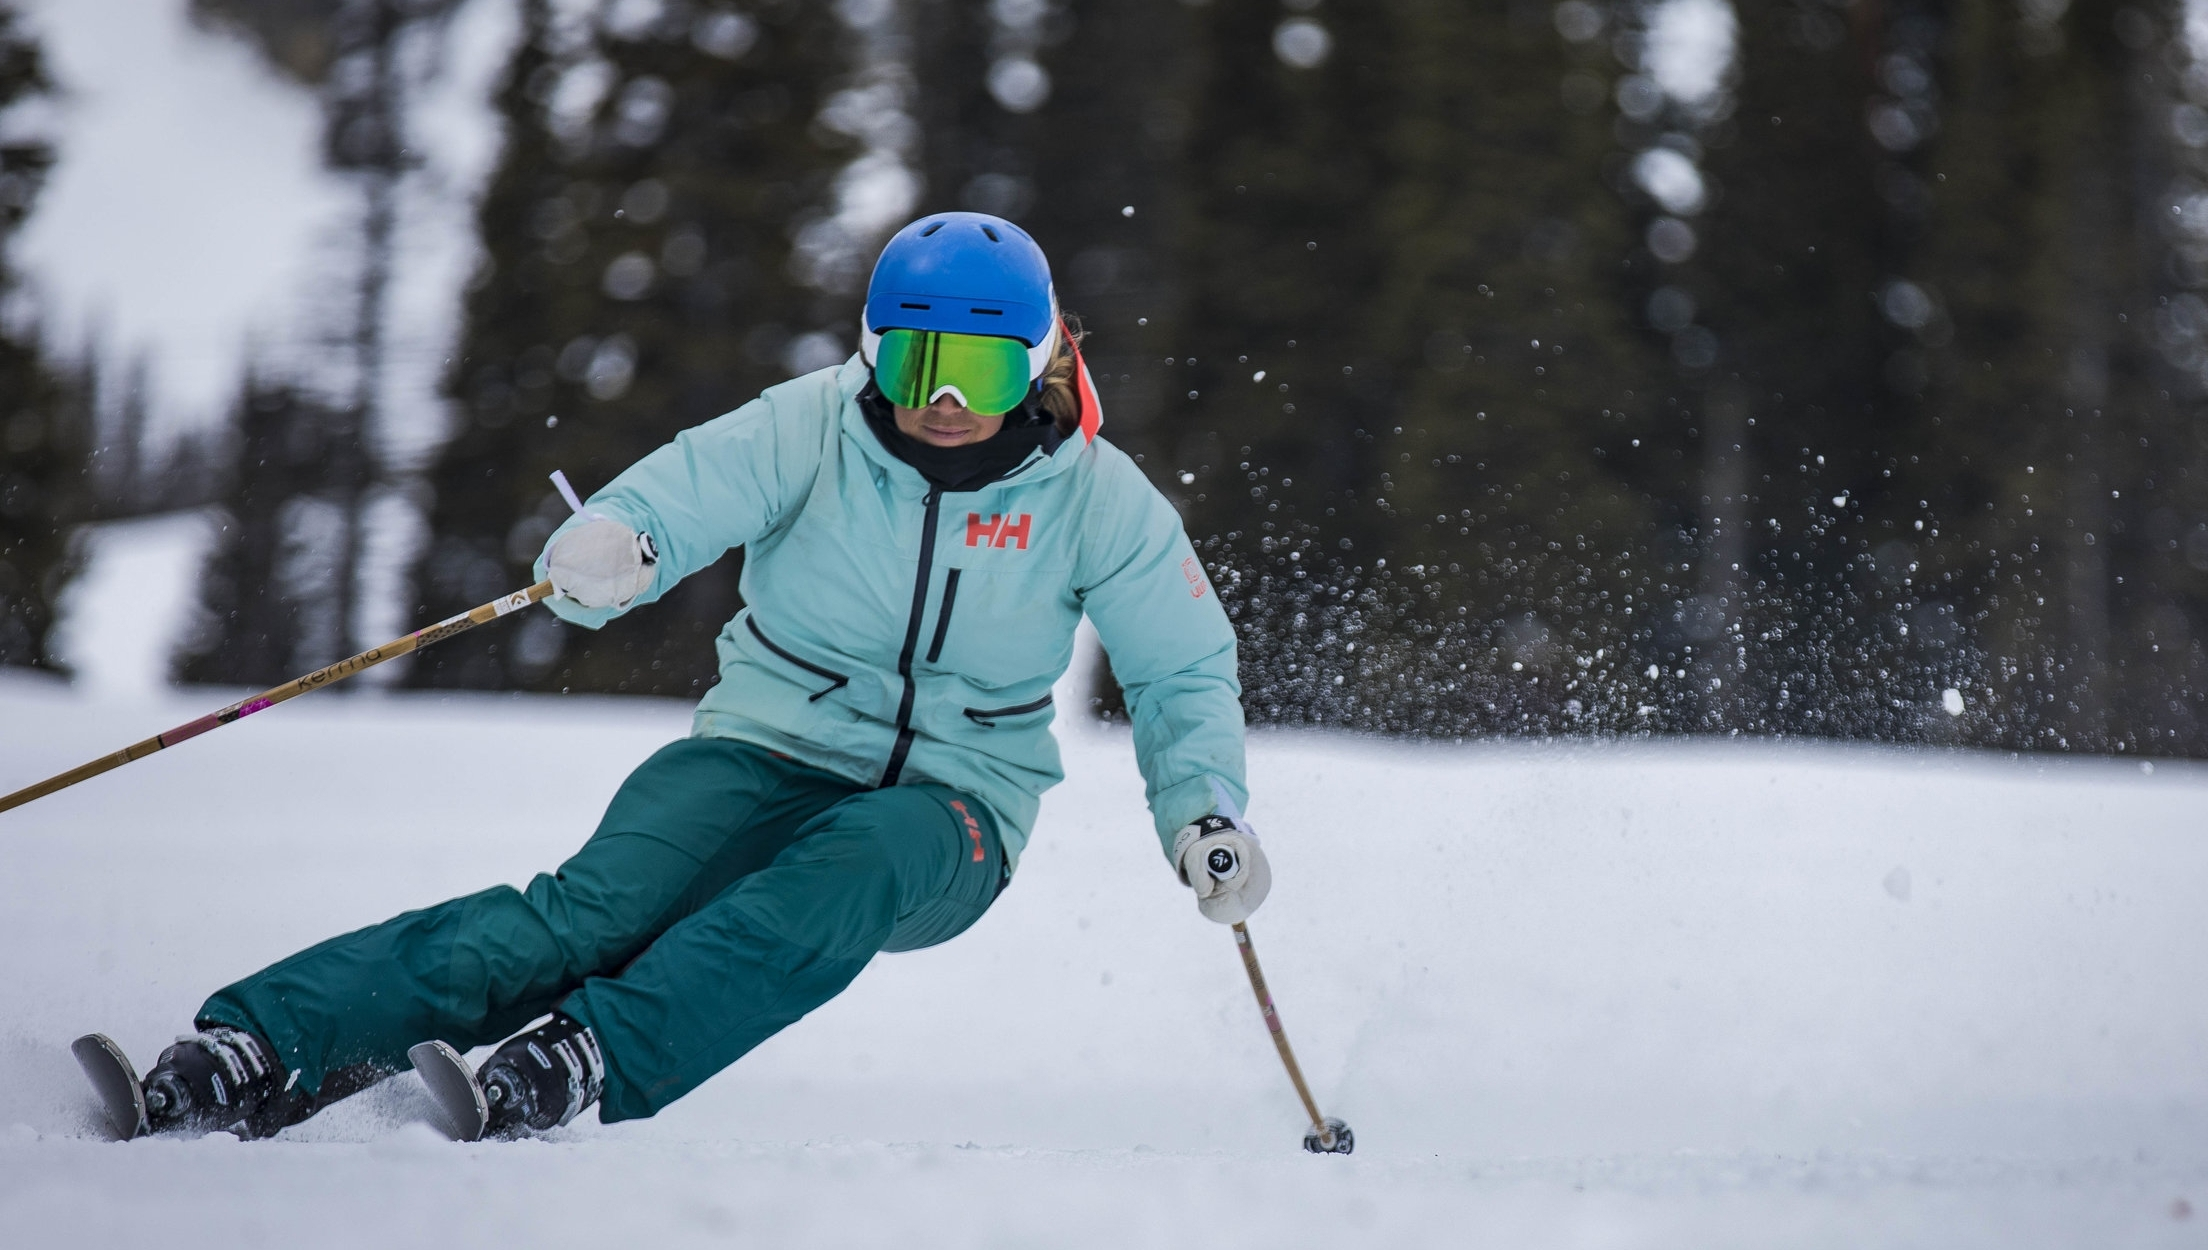 SKI - THERE ARE 10 WORLD CLASS SKI RESORTS WITHIN AN HOUR OF BENLOCH RANCH. DEER VALLEY, THE CANYONS AND PARK CITY BEING LESS THAN TWENTY MINUTES AWAY.